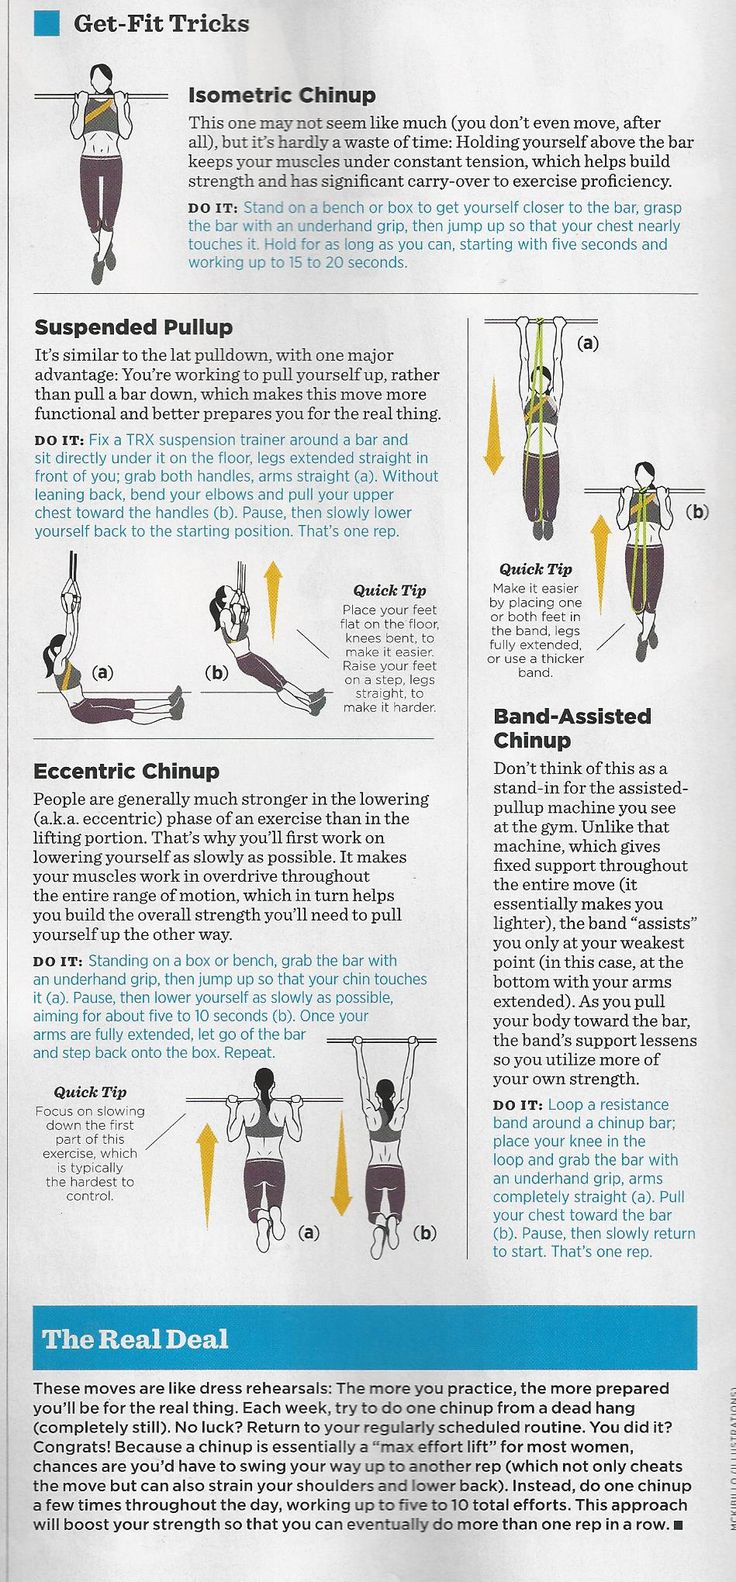 Tips for women to perform chin-ups. #ChinUpChallenge from Women's Health magazine.